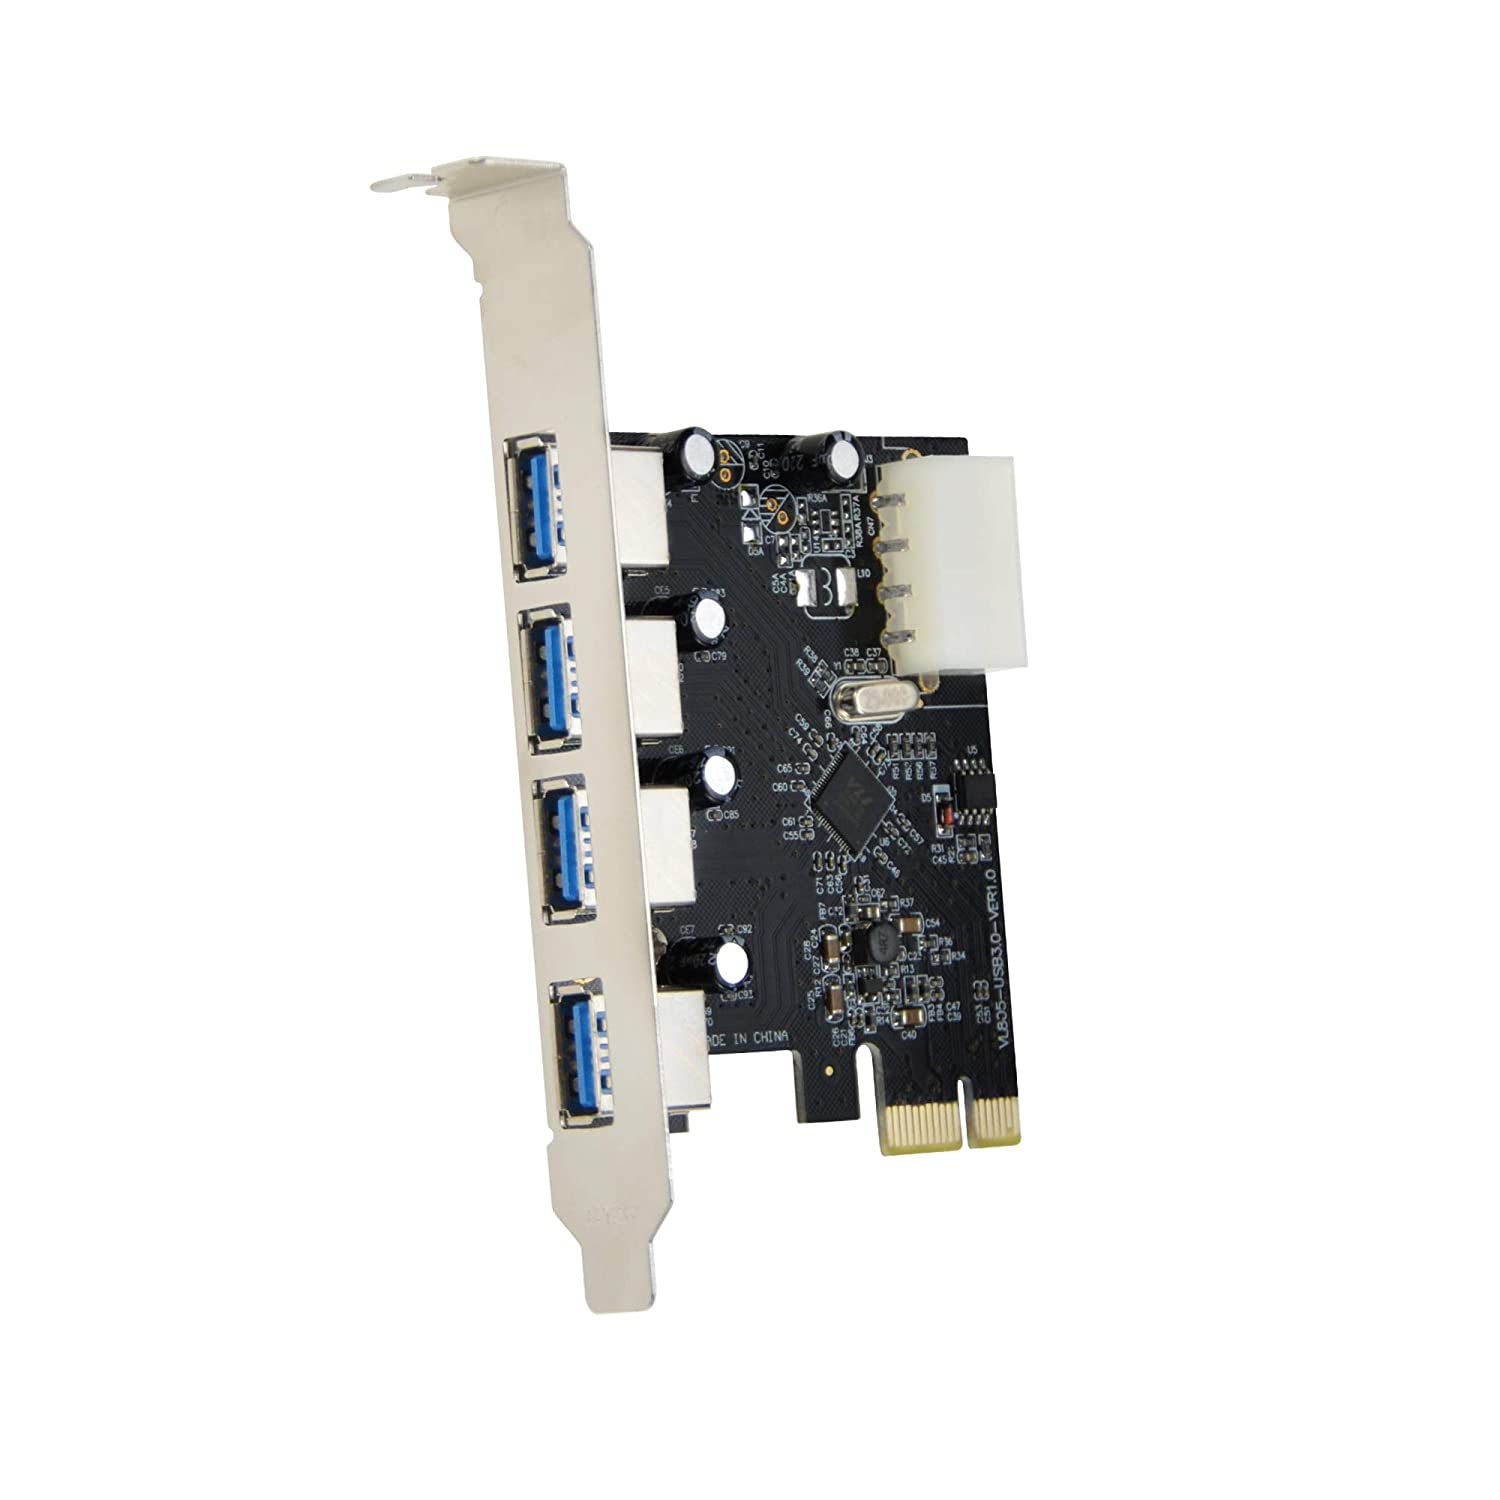 Green Adwits PCIe 1x to USB 3.1 Gen 1 Type A Port x2 and 20-pin Port x1 Expansion Card with VL805 USB 3.0 Host Controller